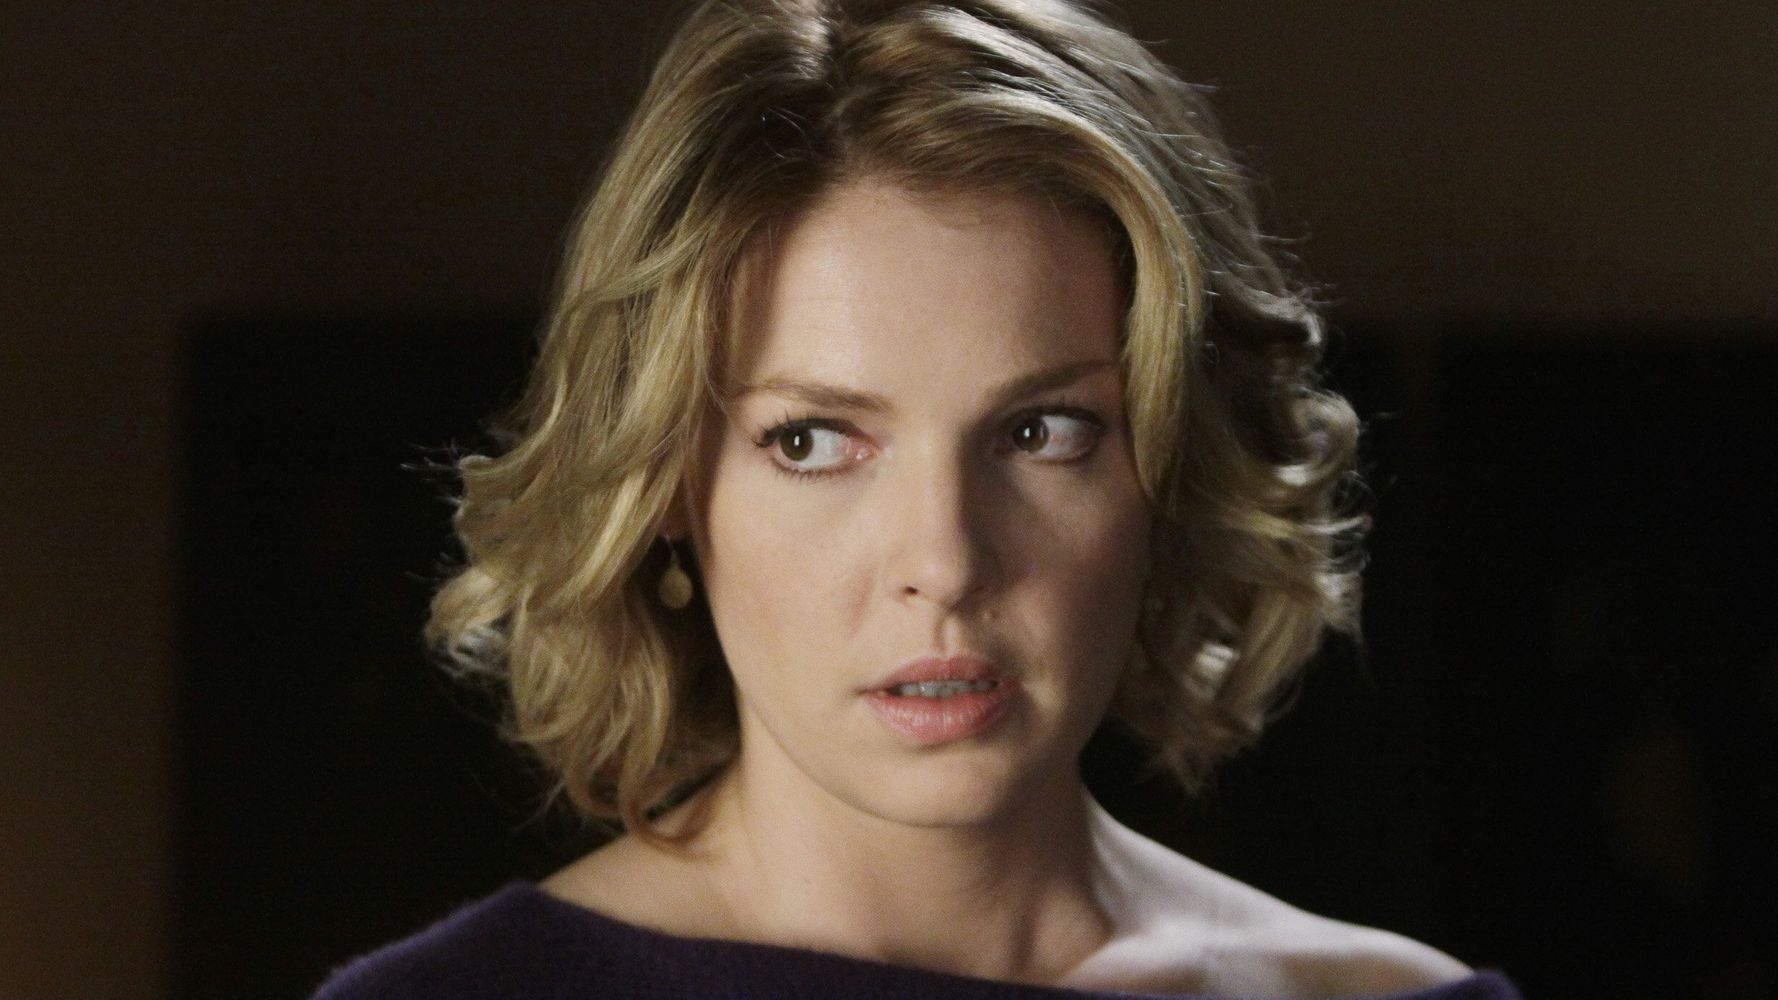 'Grey's Anatomy' And Katherine Heigl At Odds Again Over Scrapped Farewell Episode